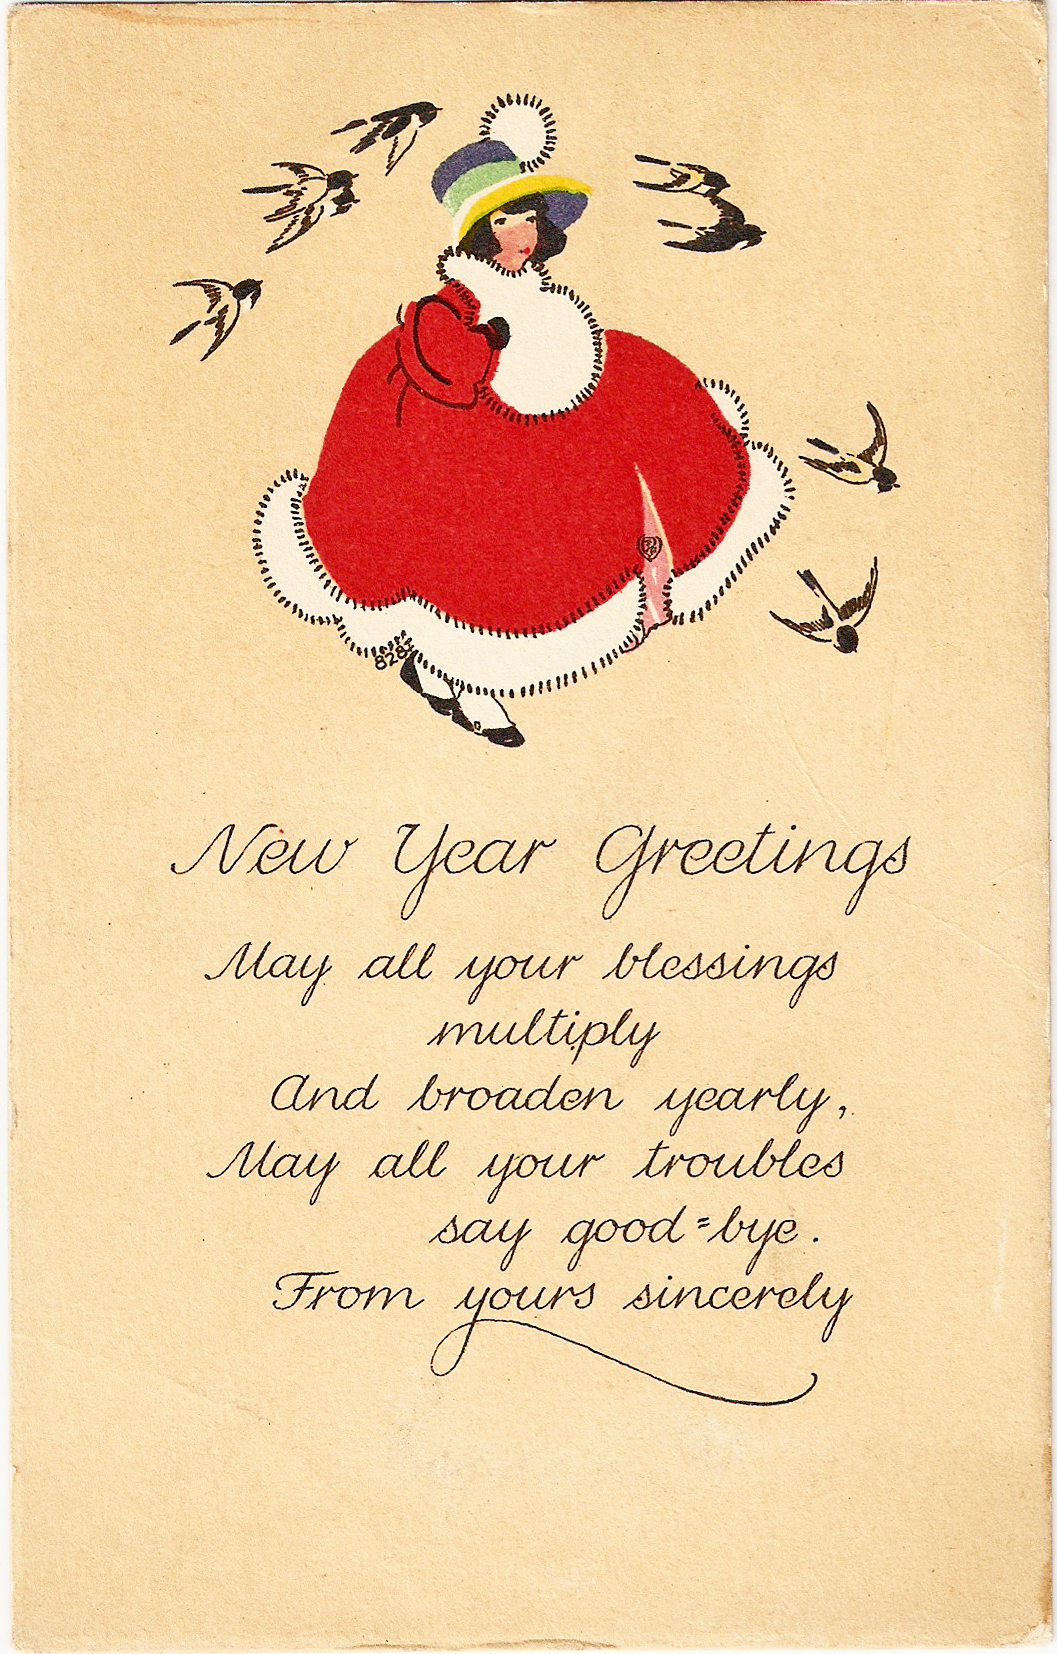 Free Vintage Clip Art  Volland Christmas New Year Postcard 1922. 1057 x 1654.New Year Wishes For Boyfriend Heart Images Love